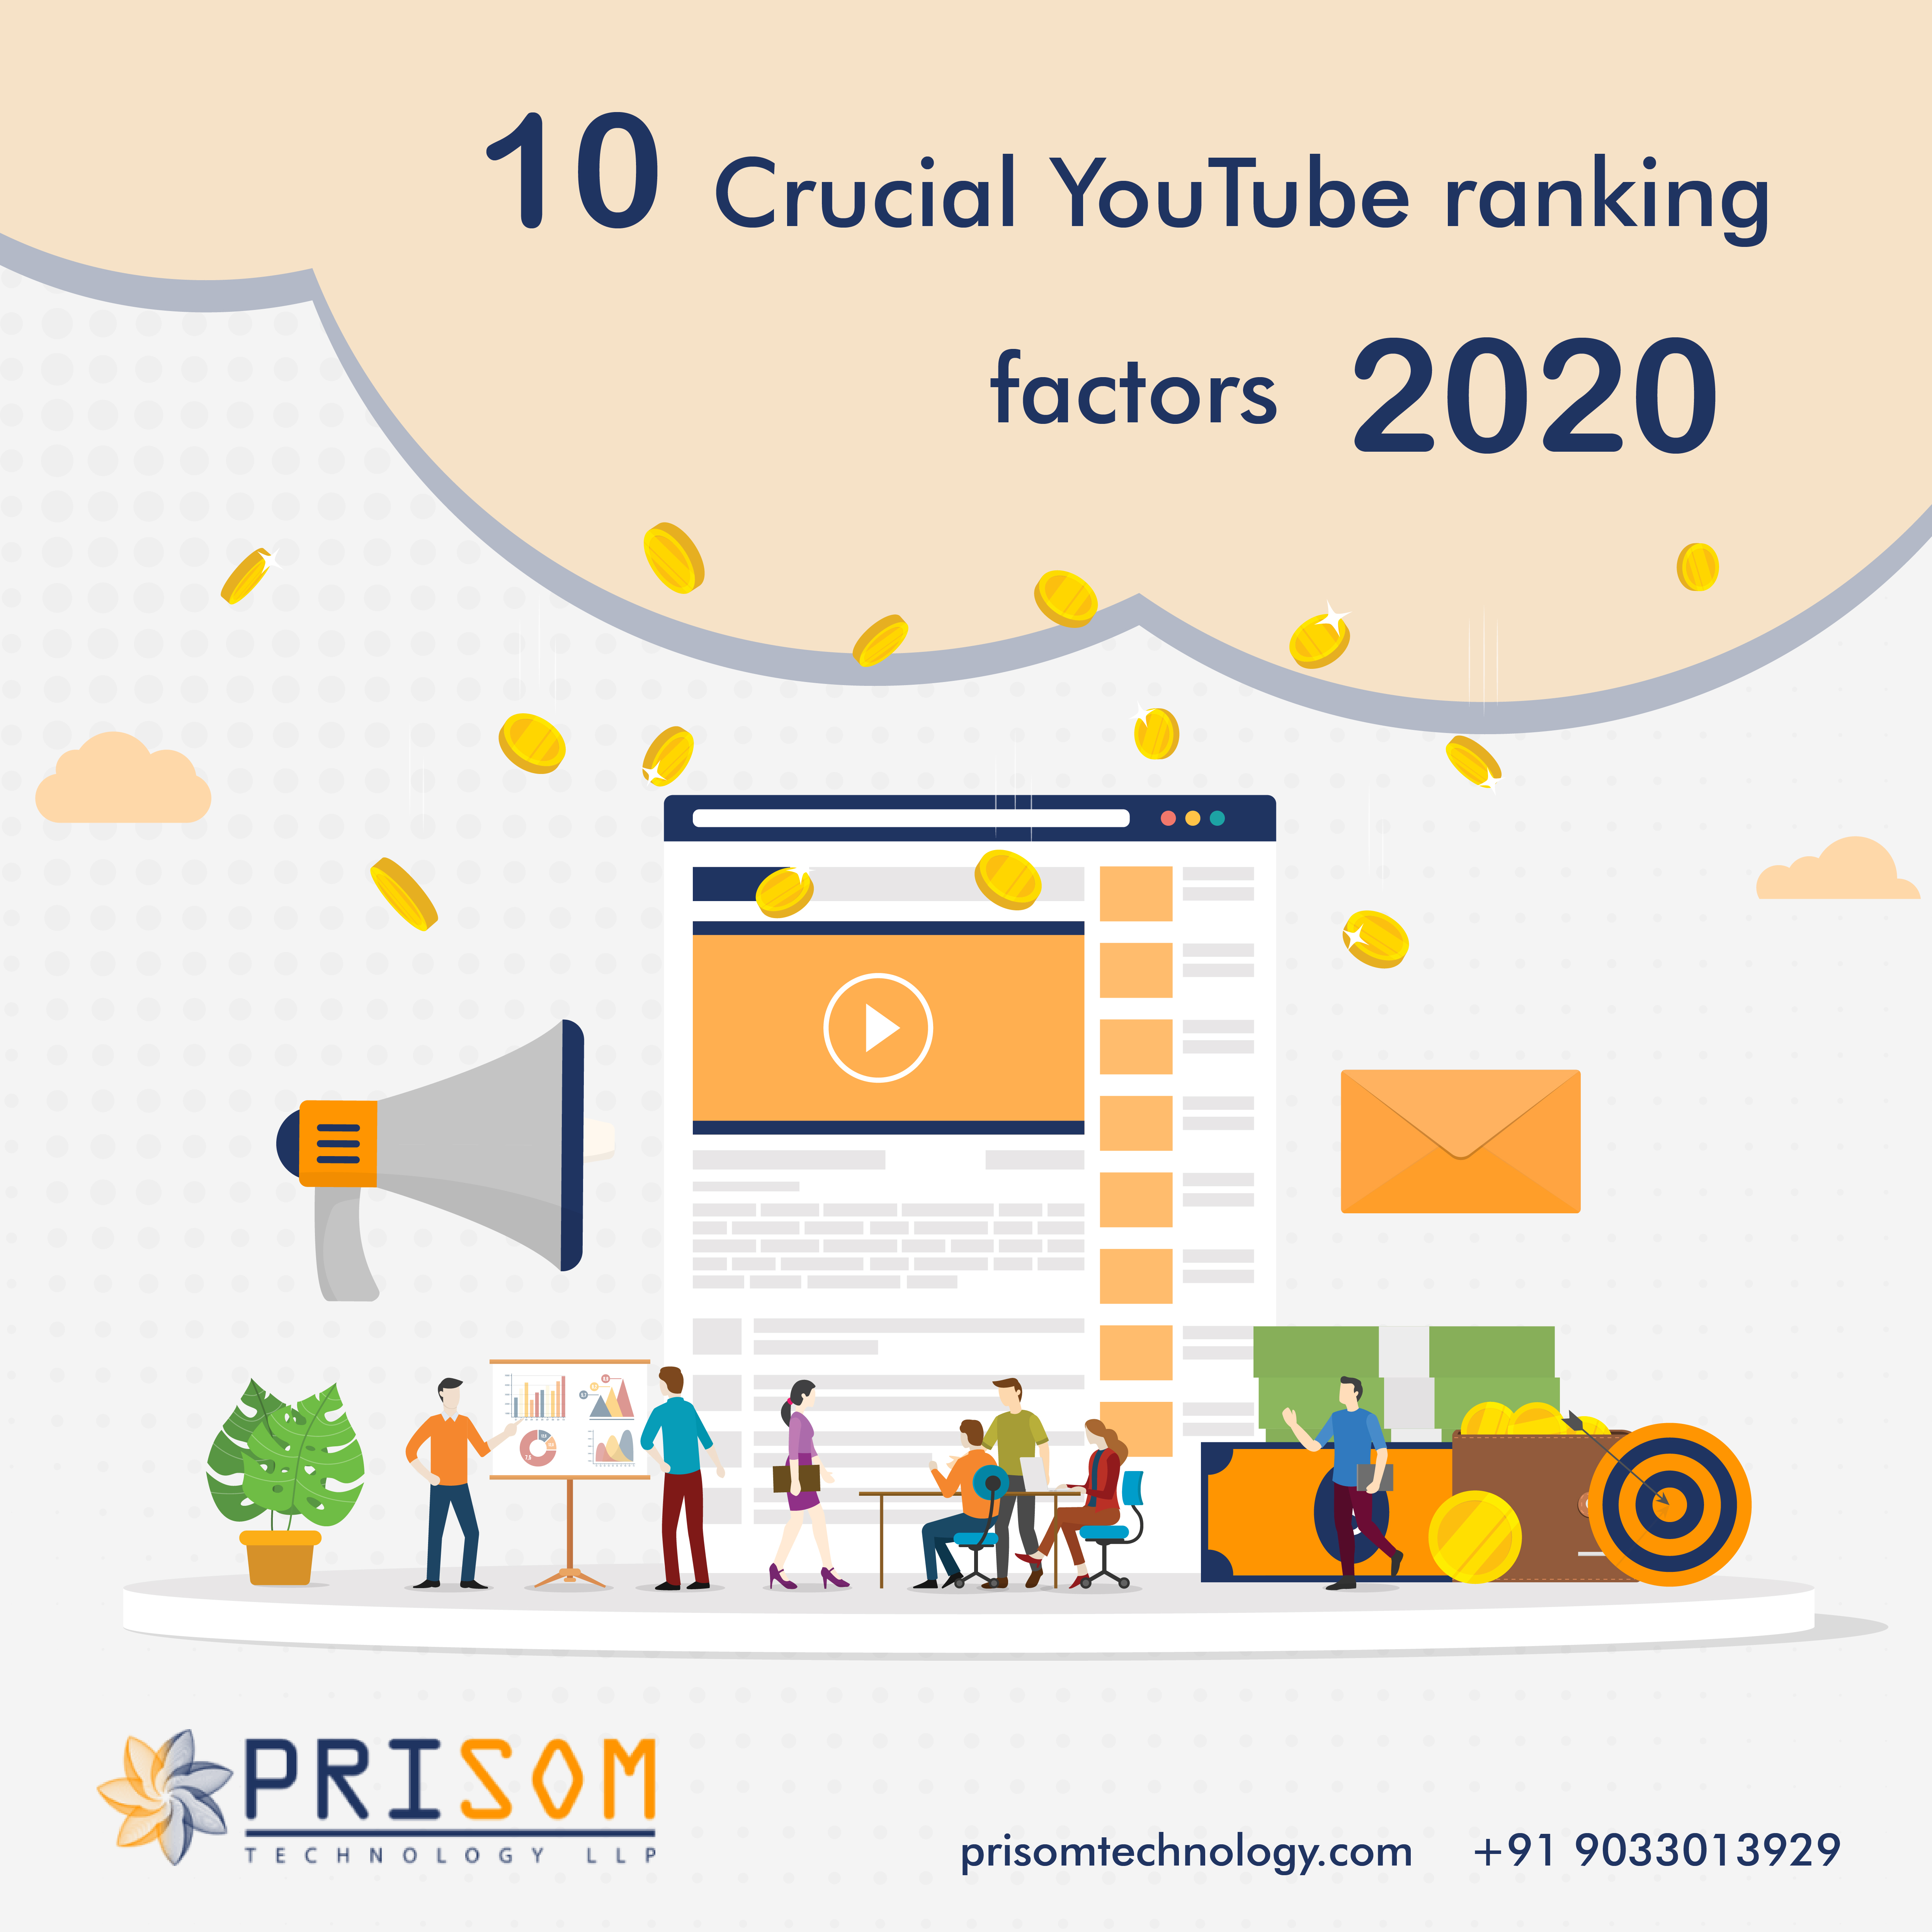 10 Crucial YouTube Ranking Factors 2020